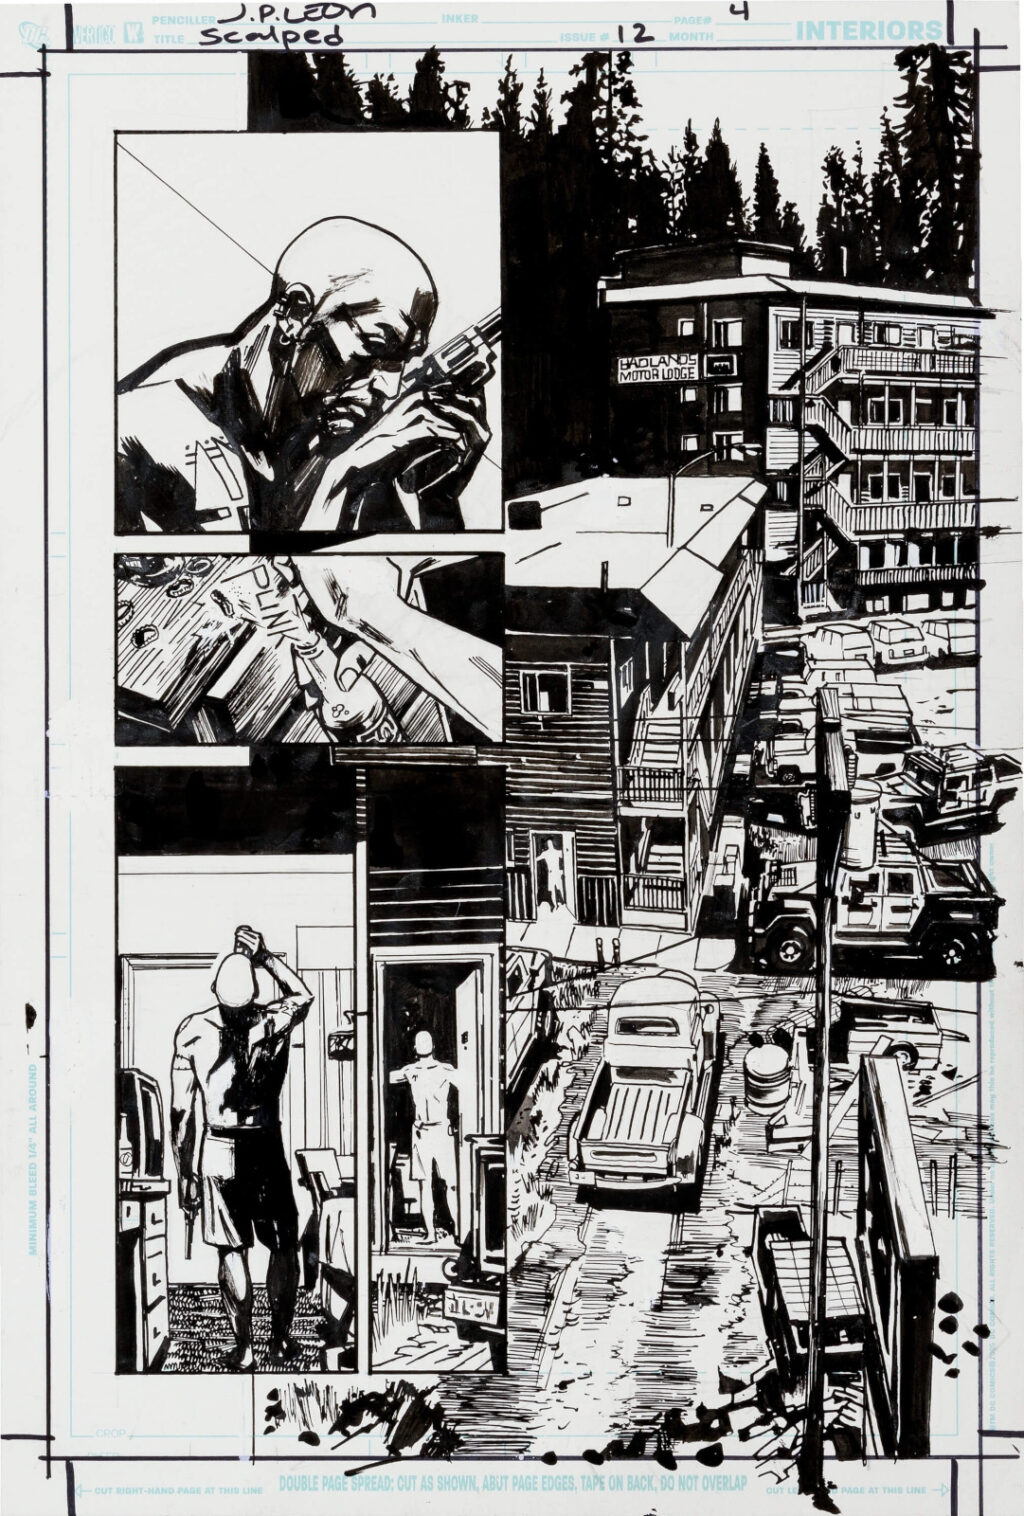 Scalped issue 12 page 4 by John Paul Leon